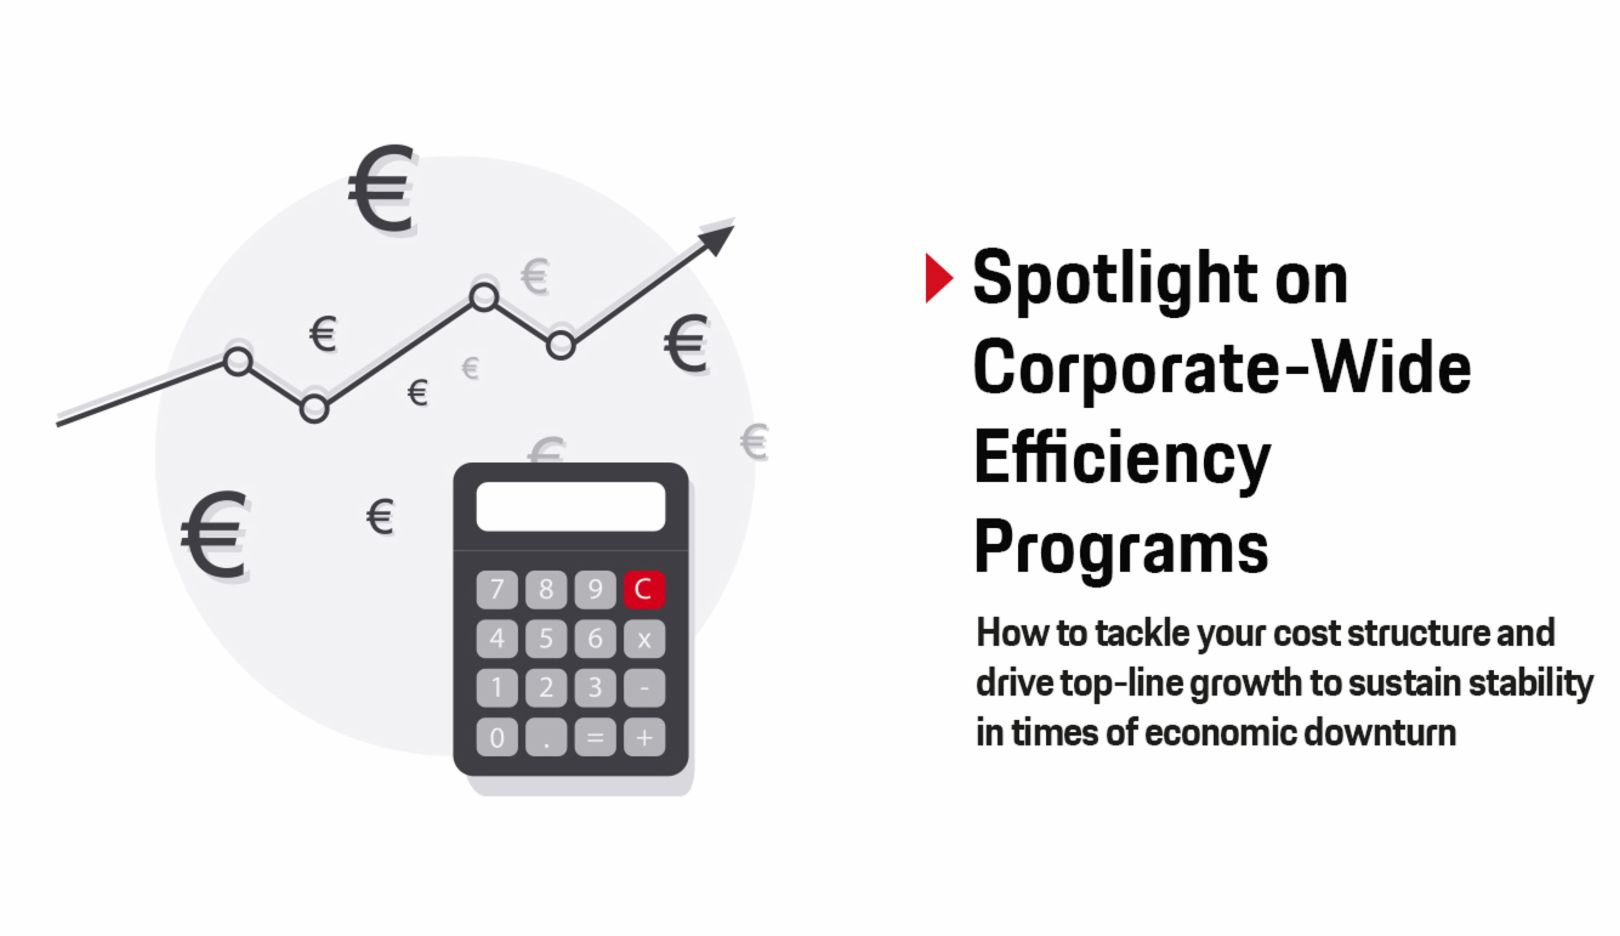 Spotlight on Coporate-Wide Efficency Programs, Paper, 2019, Porsche Consulting GmbH